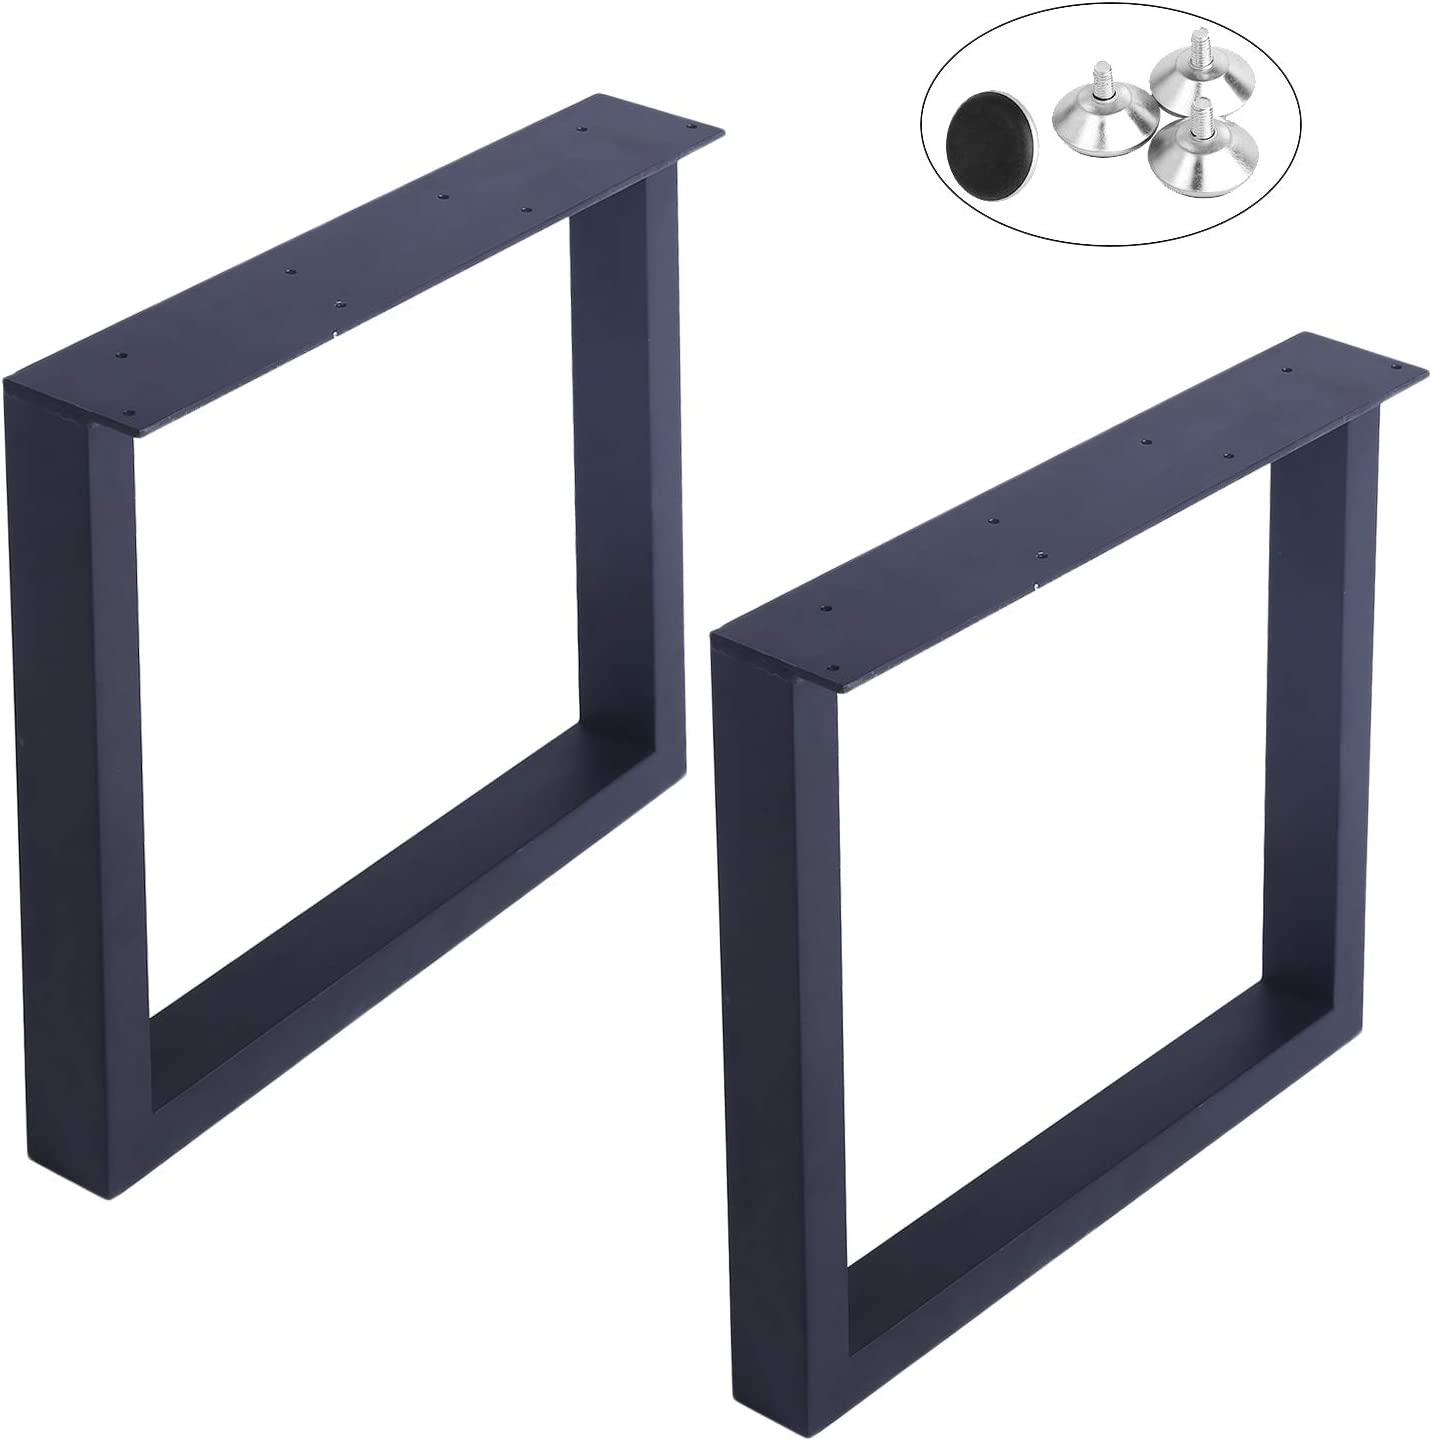 """MBQQ Furniture Legs 12.12""""Height 112.12""""Wide Rustic Decory Square Tube Table  Legs,Heavy Duty Metal Desk Legs,Dining Table Legs,Industrial Modern, DIY ..."""